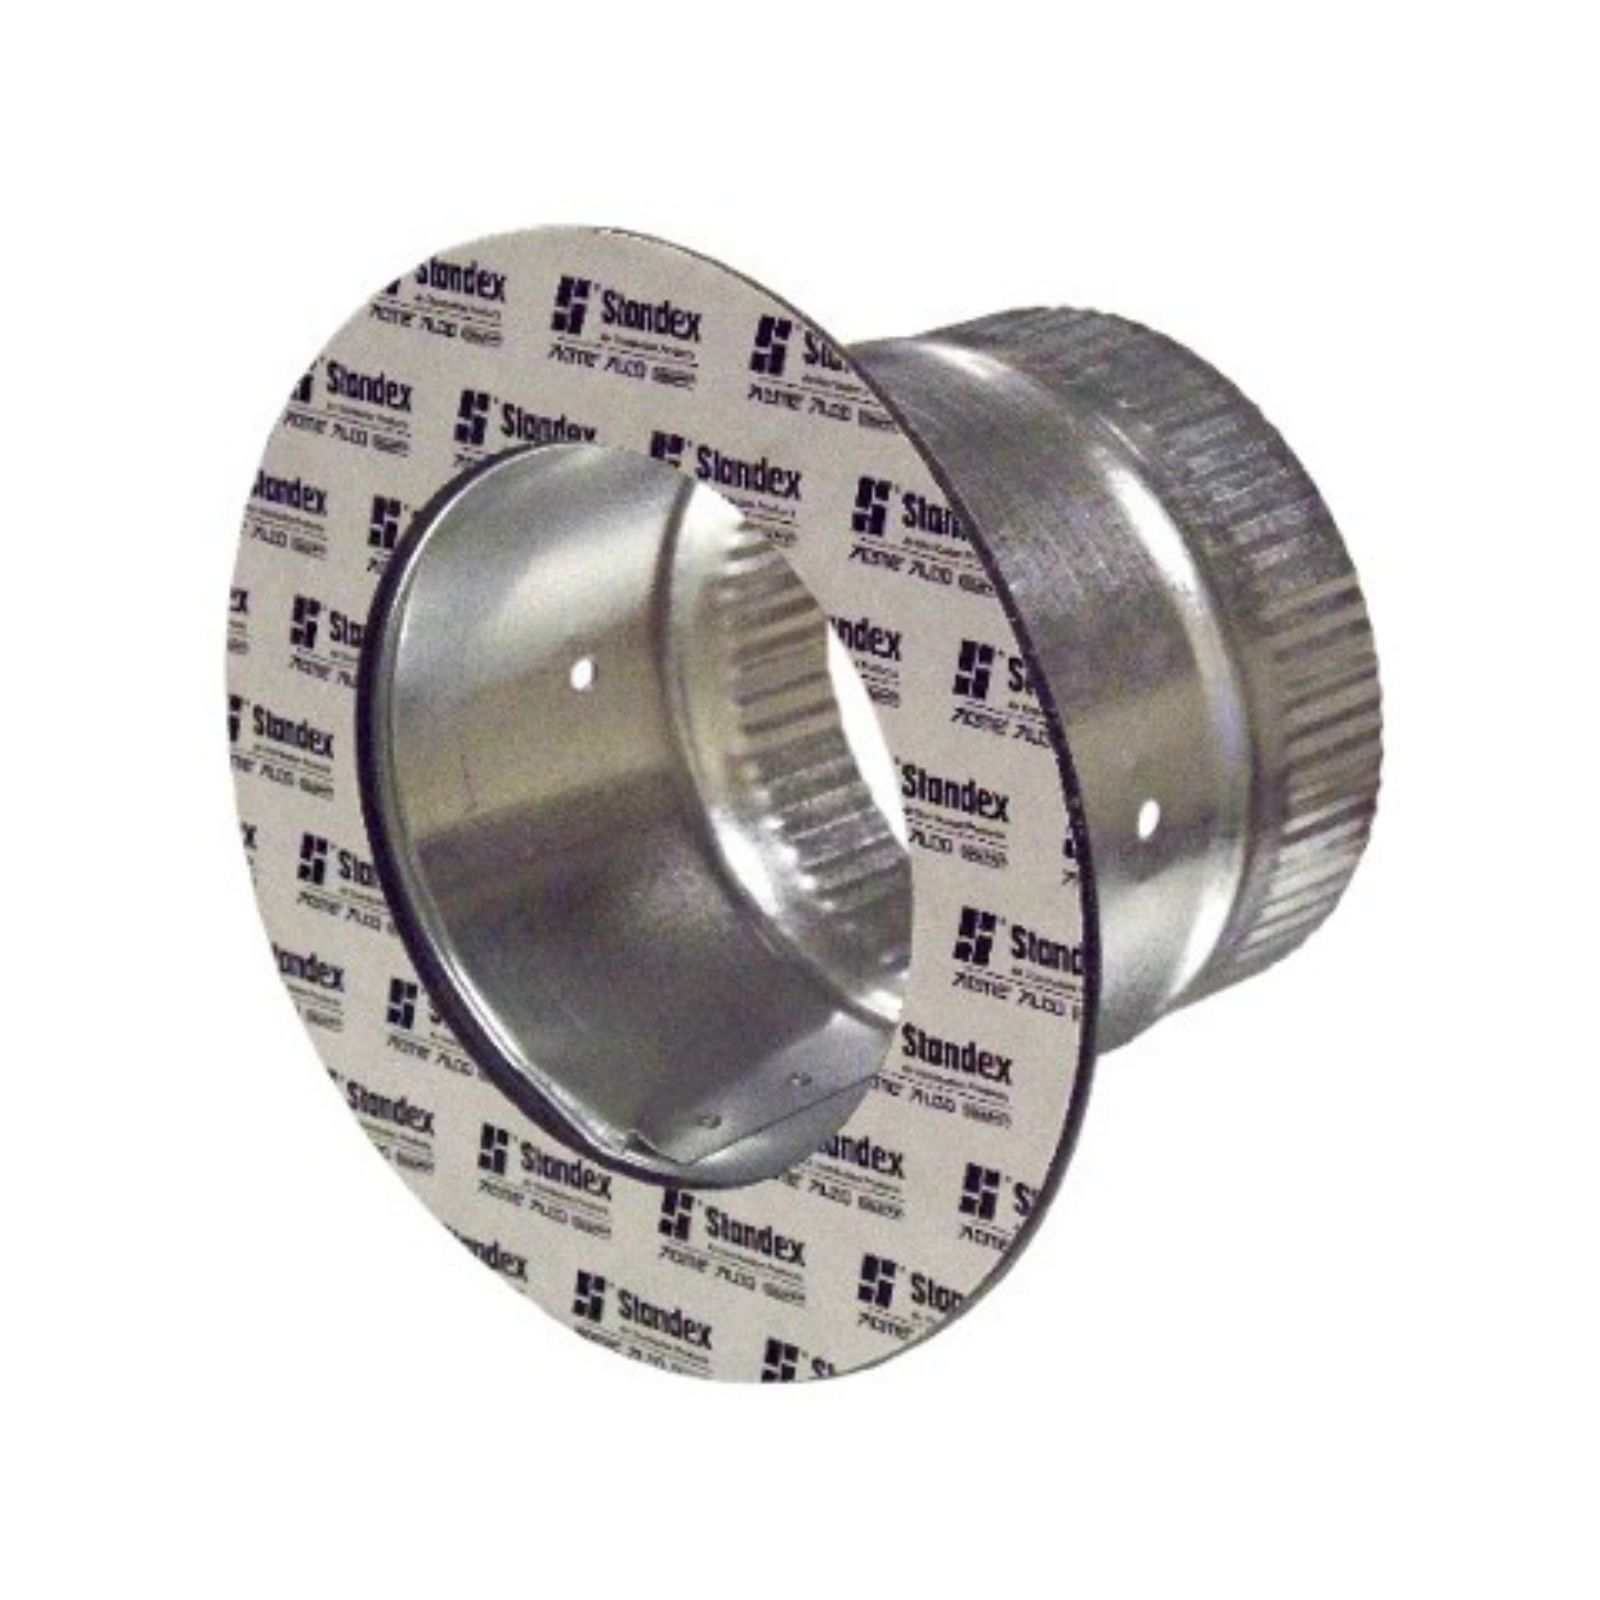 "Snappy 167-5 - #167 - Adhesive Takeoff, 6"" Tube Length, 1 1/2"" Flange, for 5"" Duct"